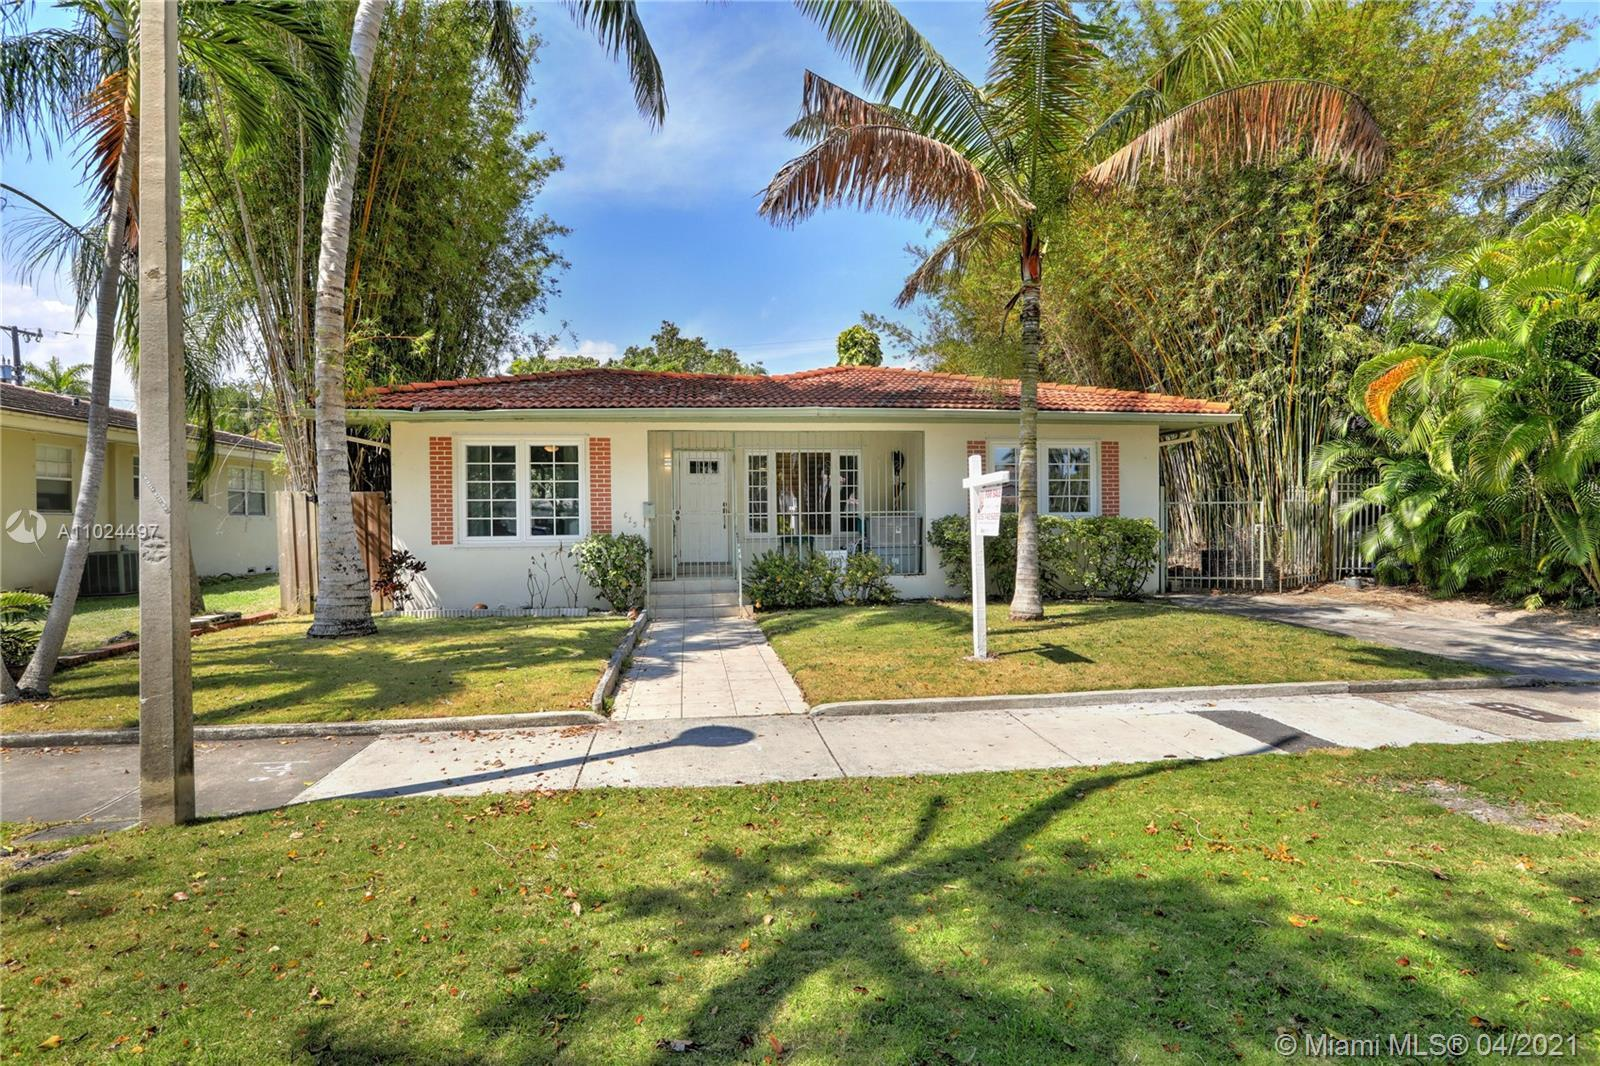 Live in Miami's first Historic neighborhood! Located on one of Morningside's prettiest blocks, this